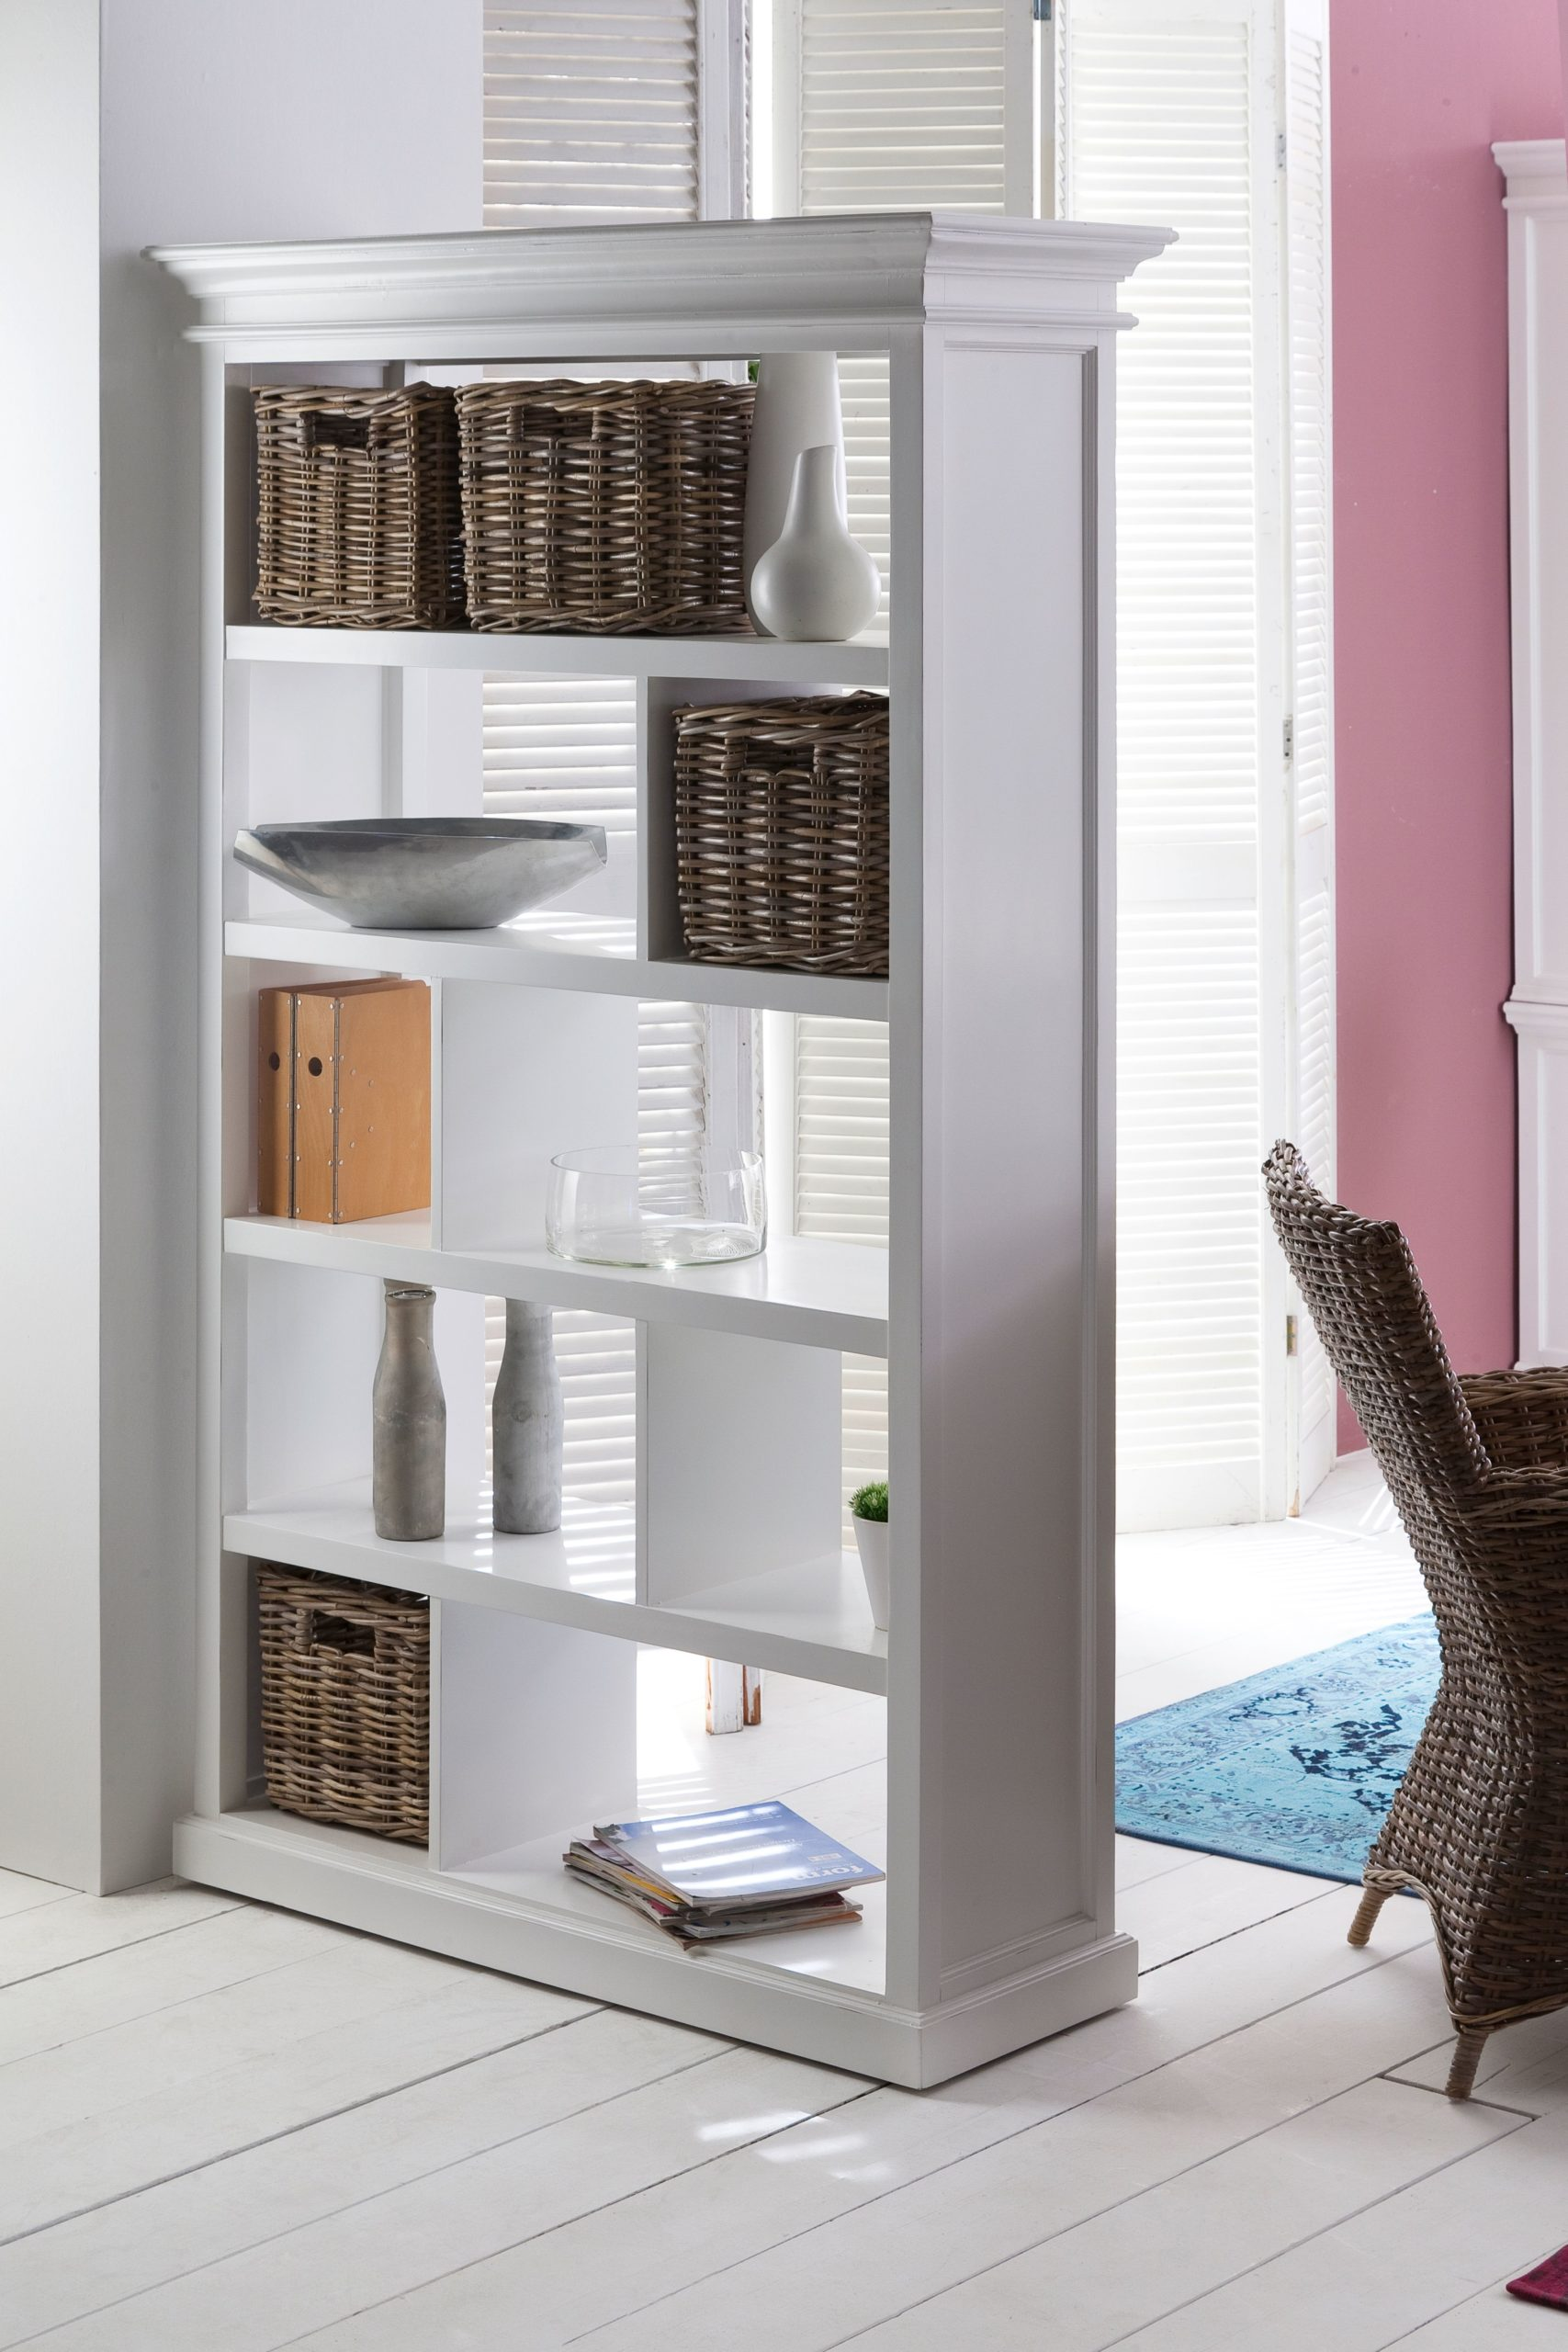 Room Divider w/ basket set